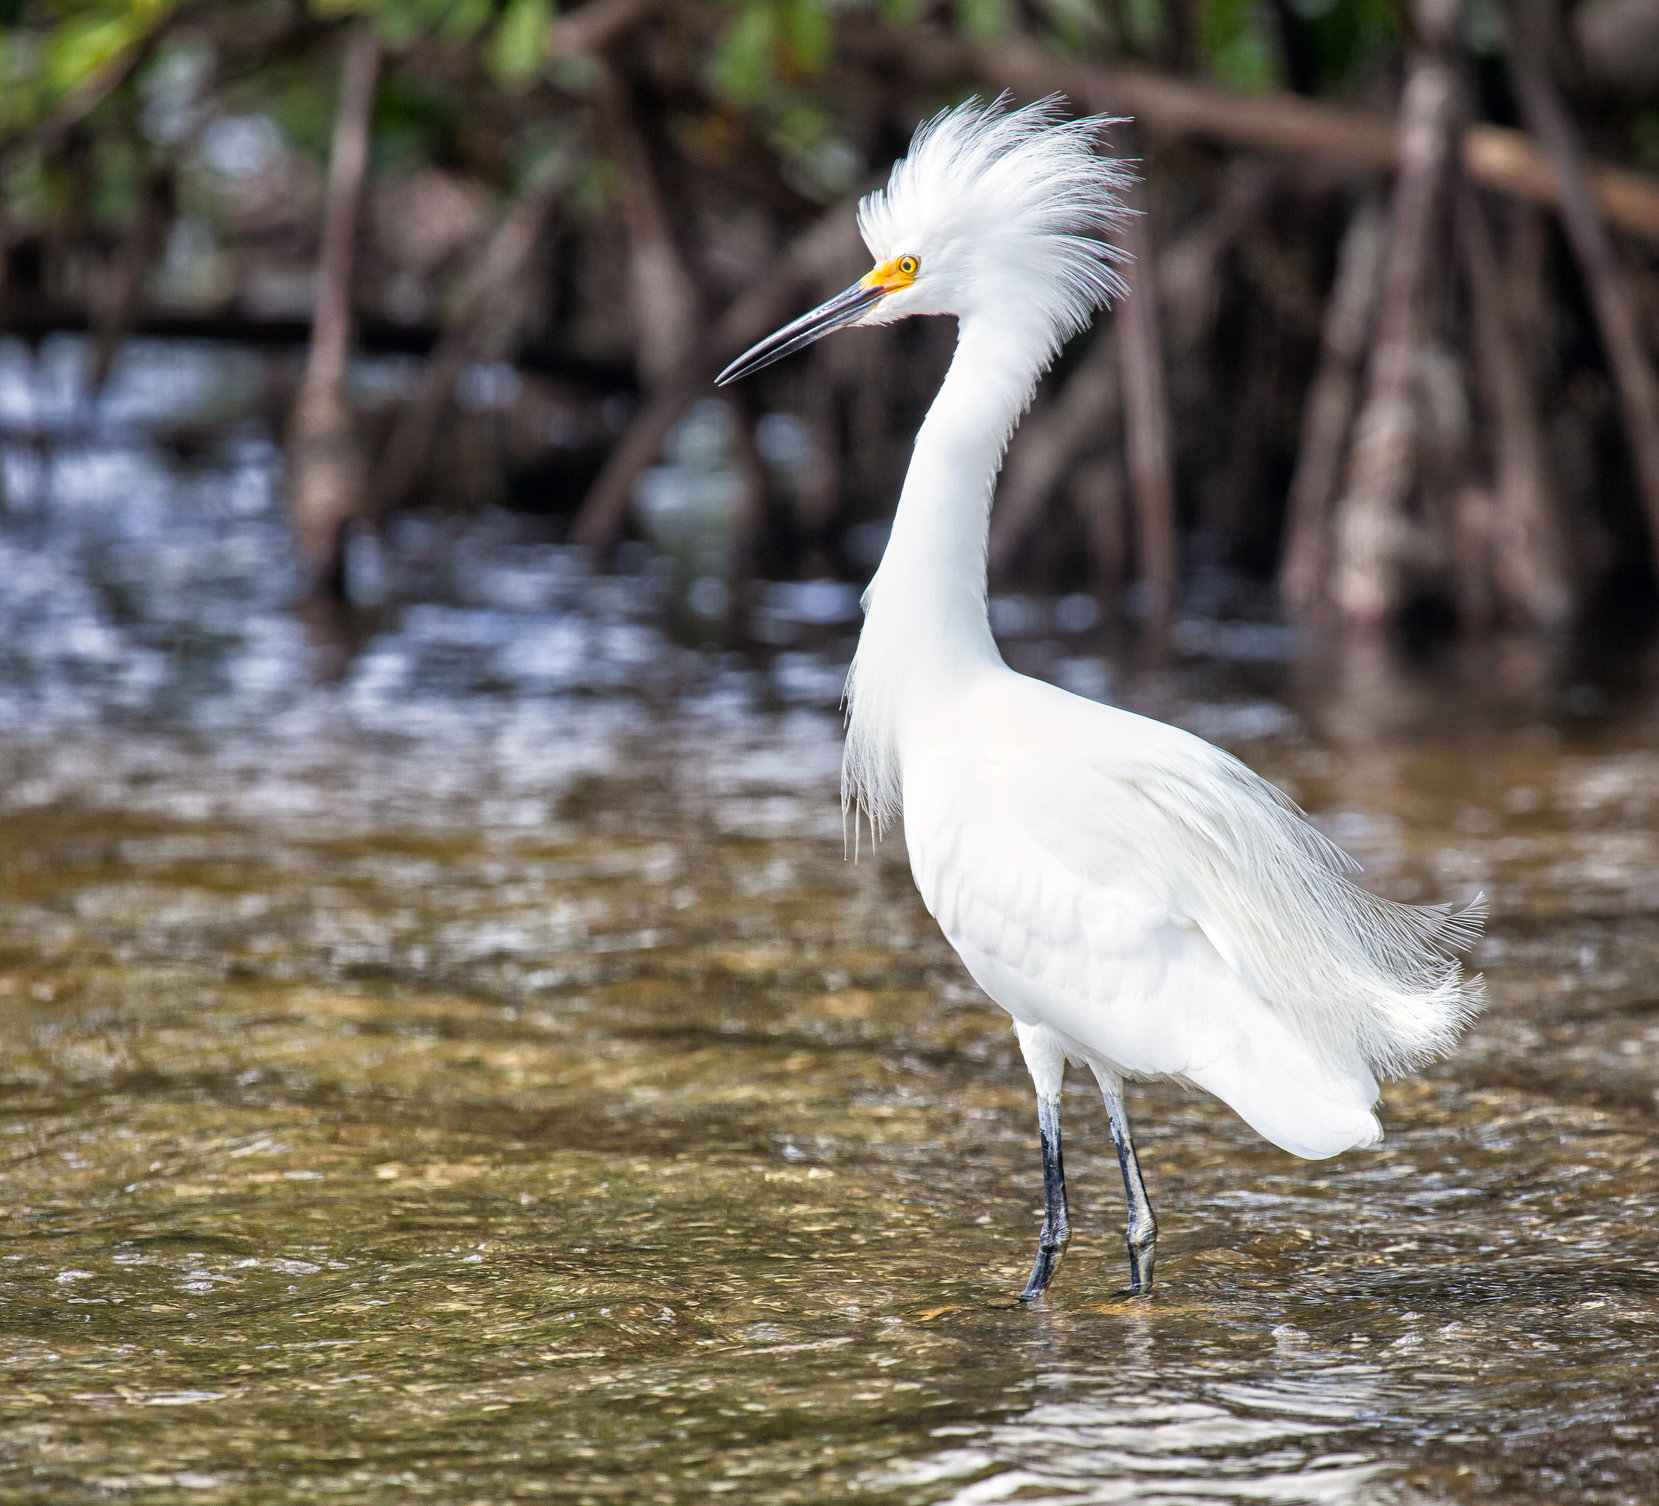 Sanibel Island beaches wildlife